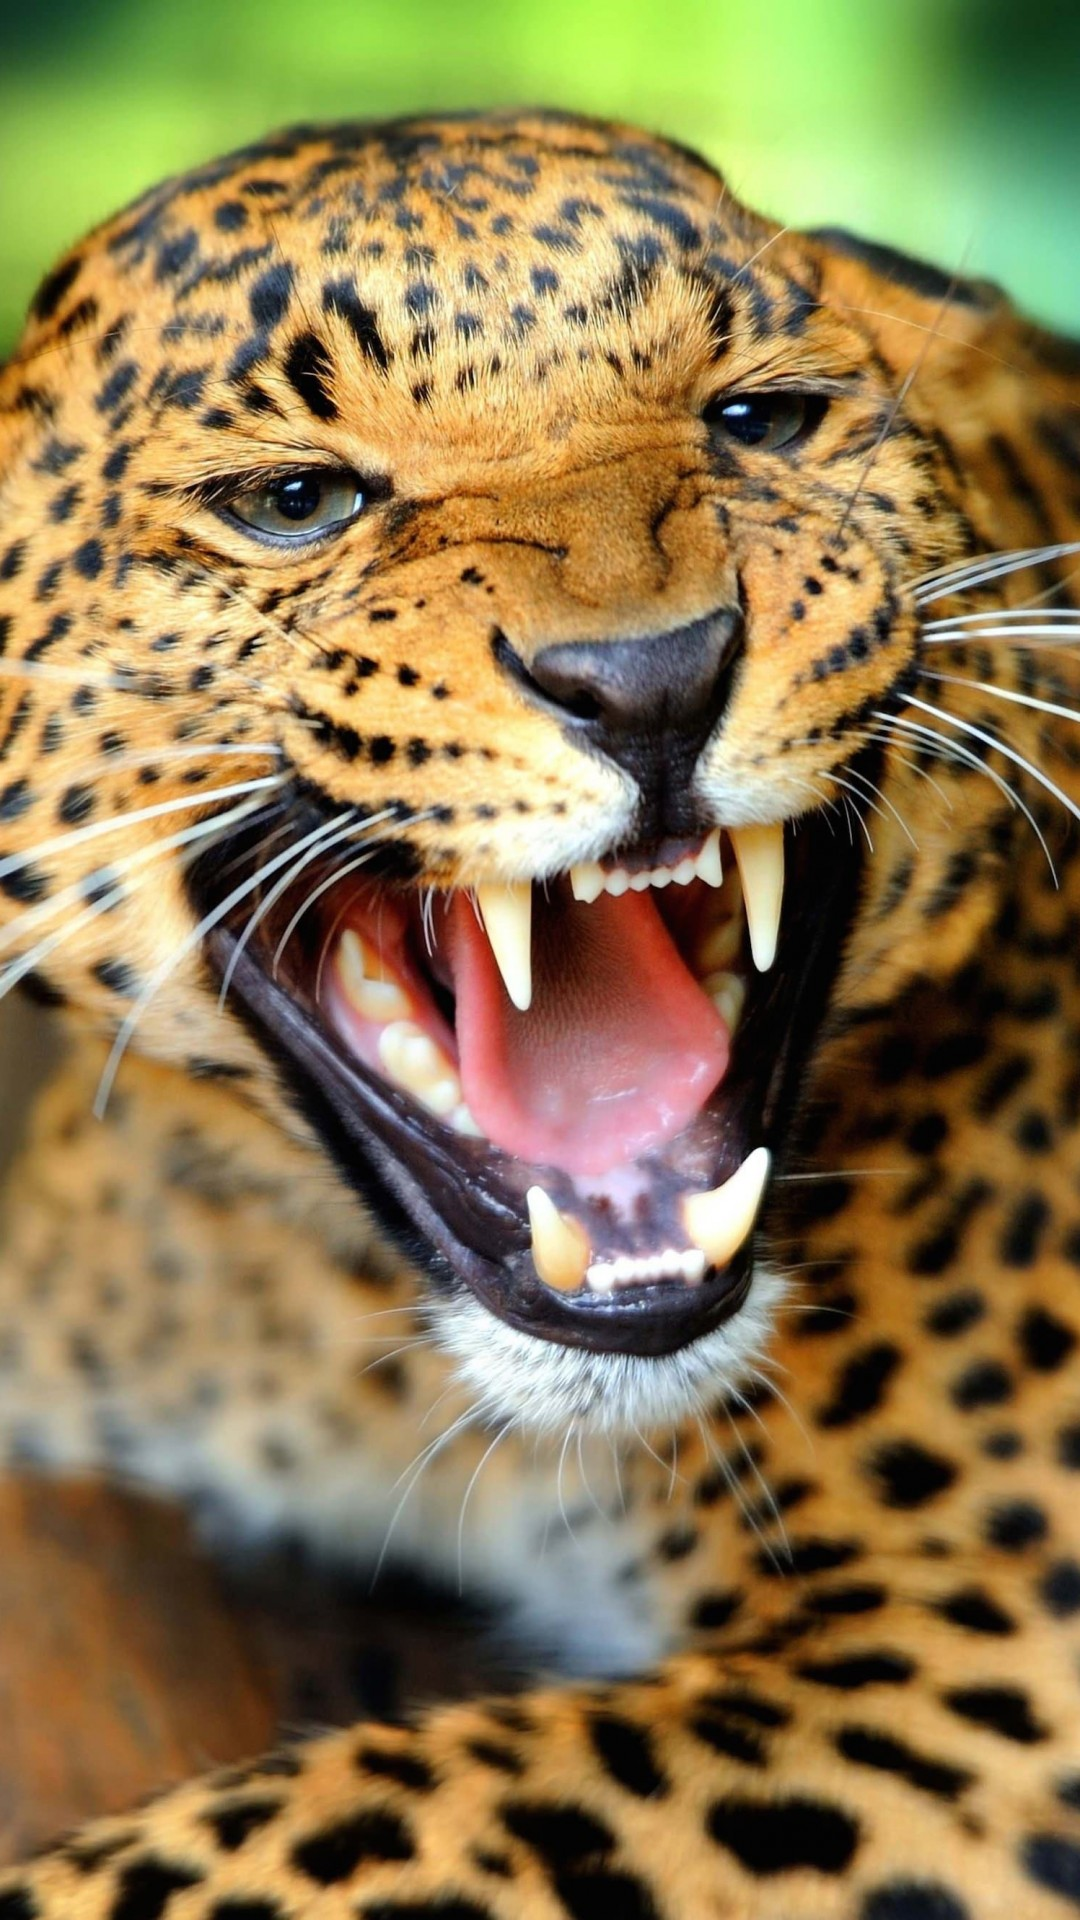 Growling Leopard Wallpaper for LG G2